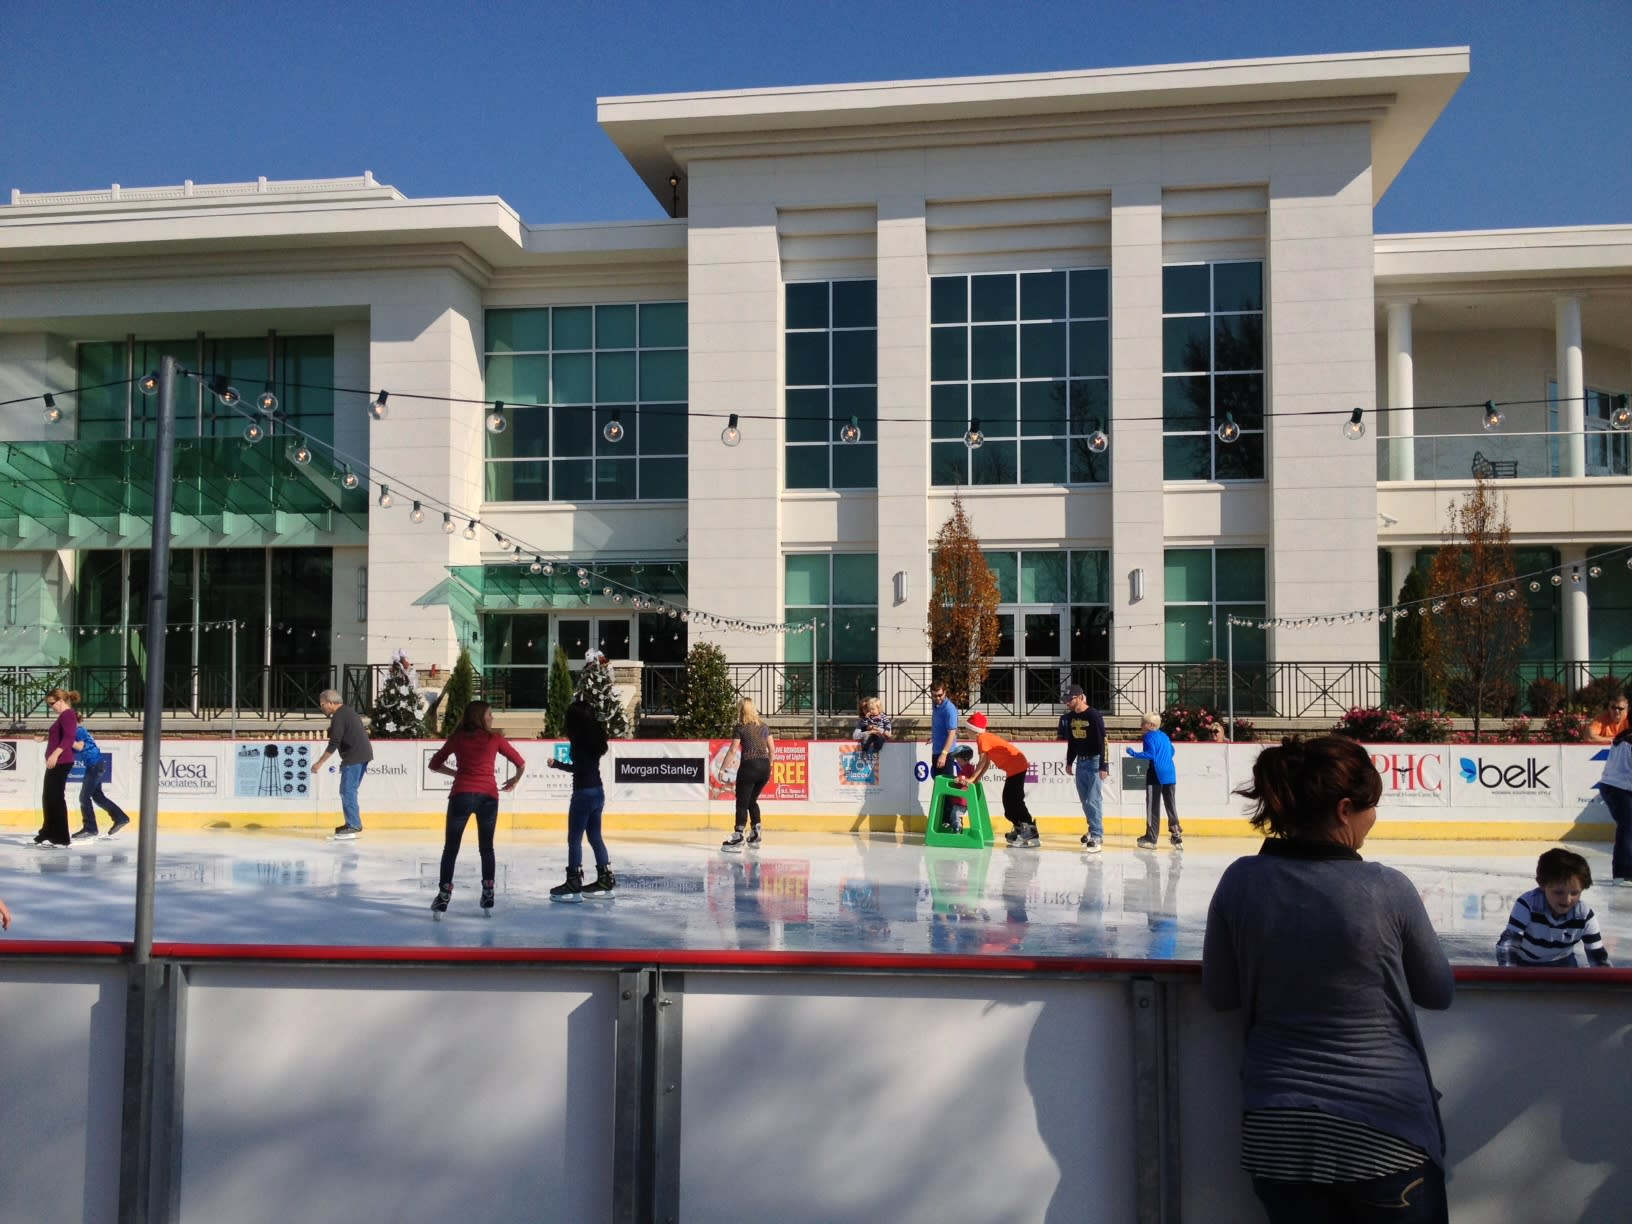 Skating in the Park at the Huntsville Museum of Art in Huntsville, Alabama via iHeartHsv.com